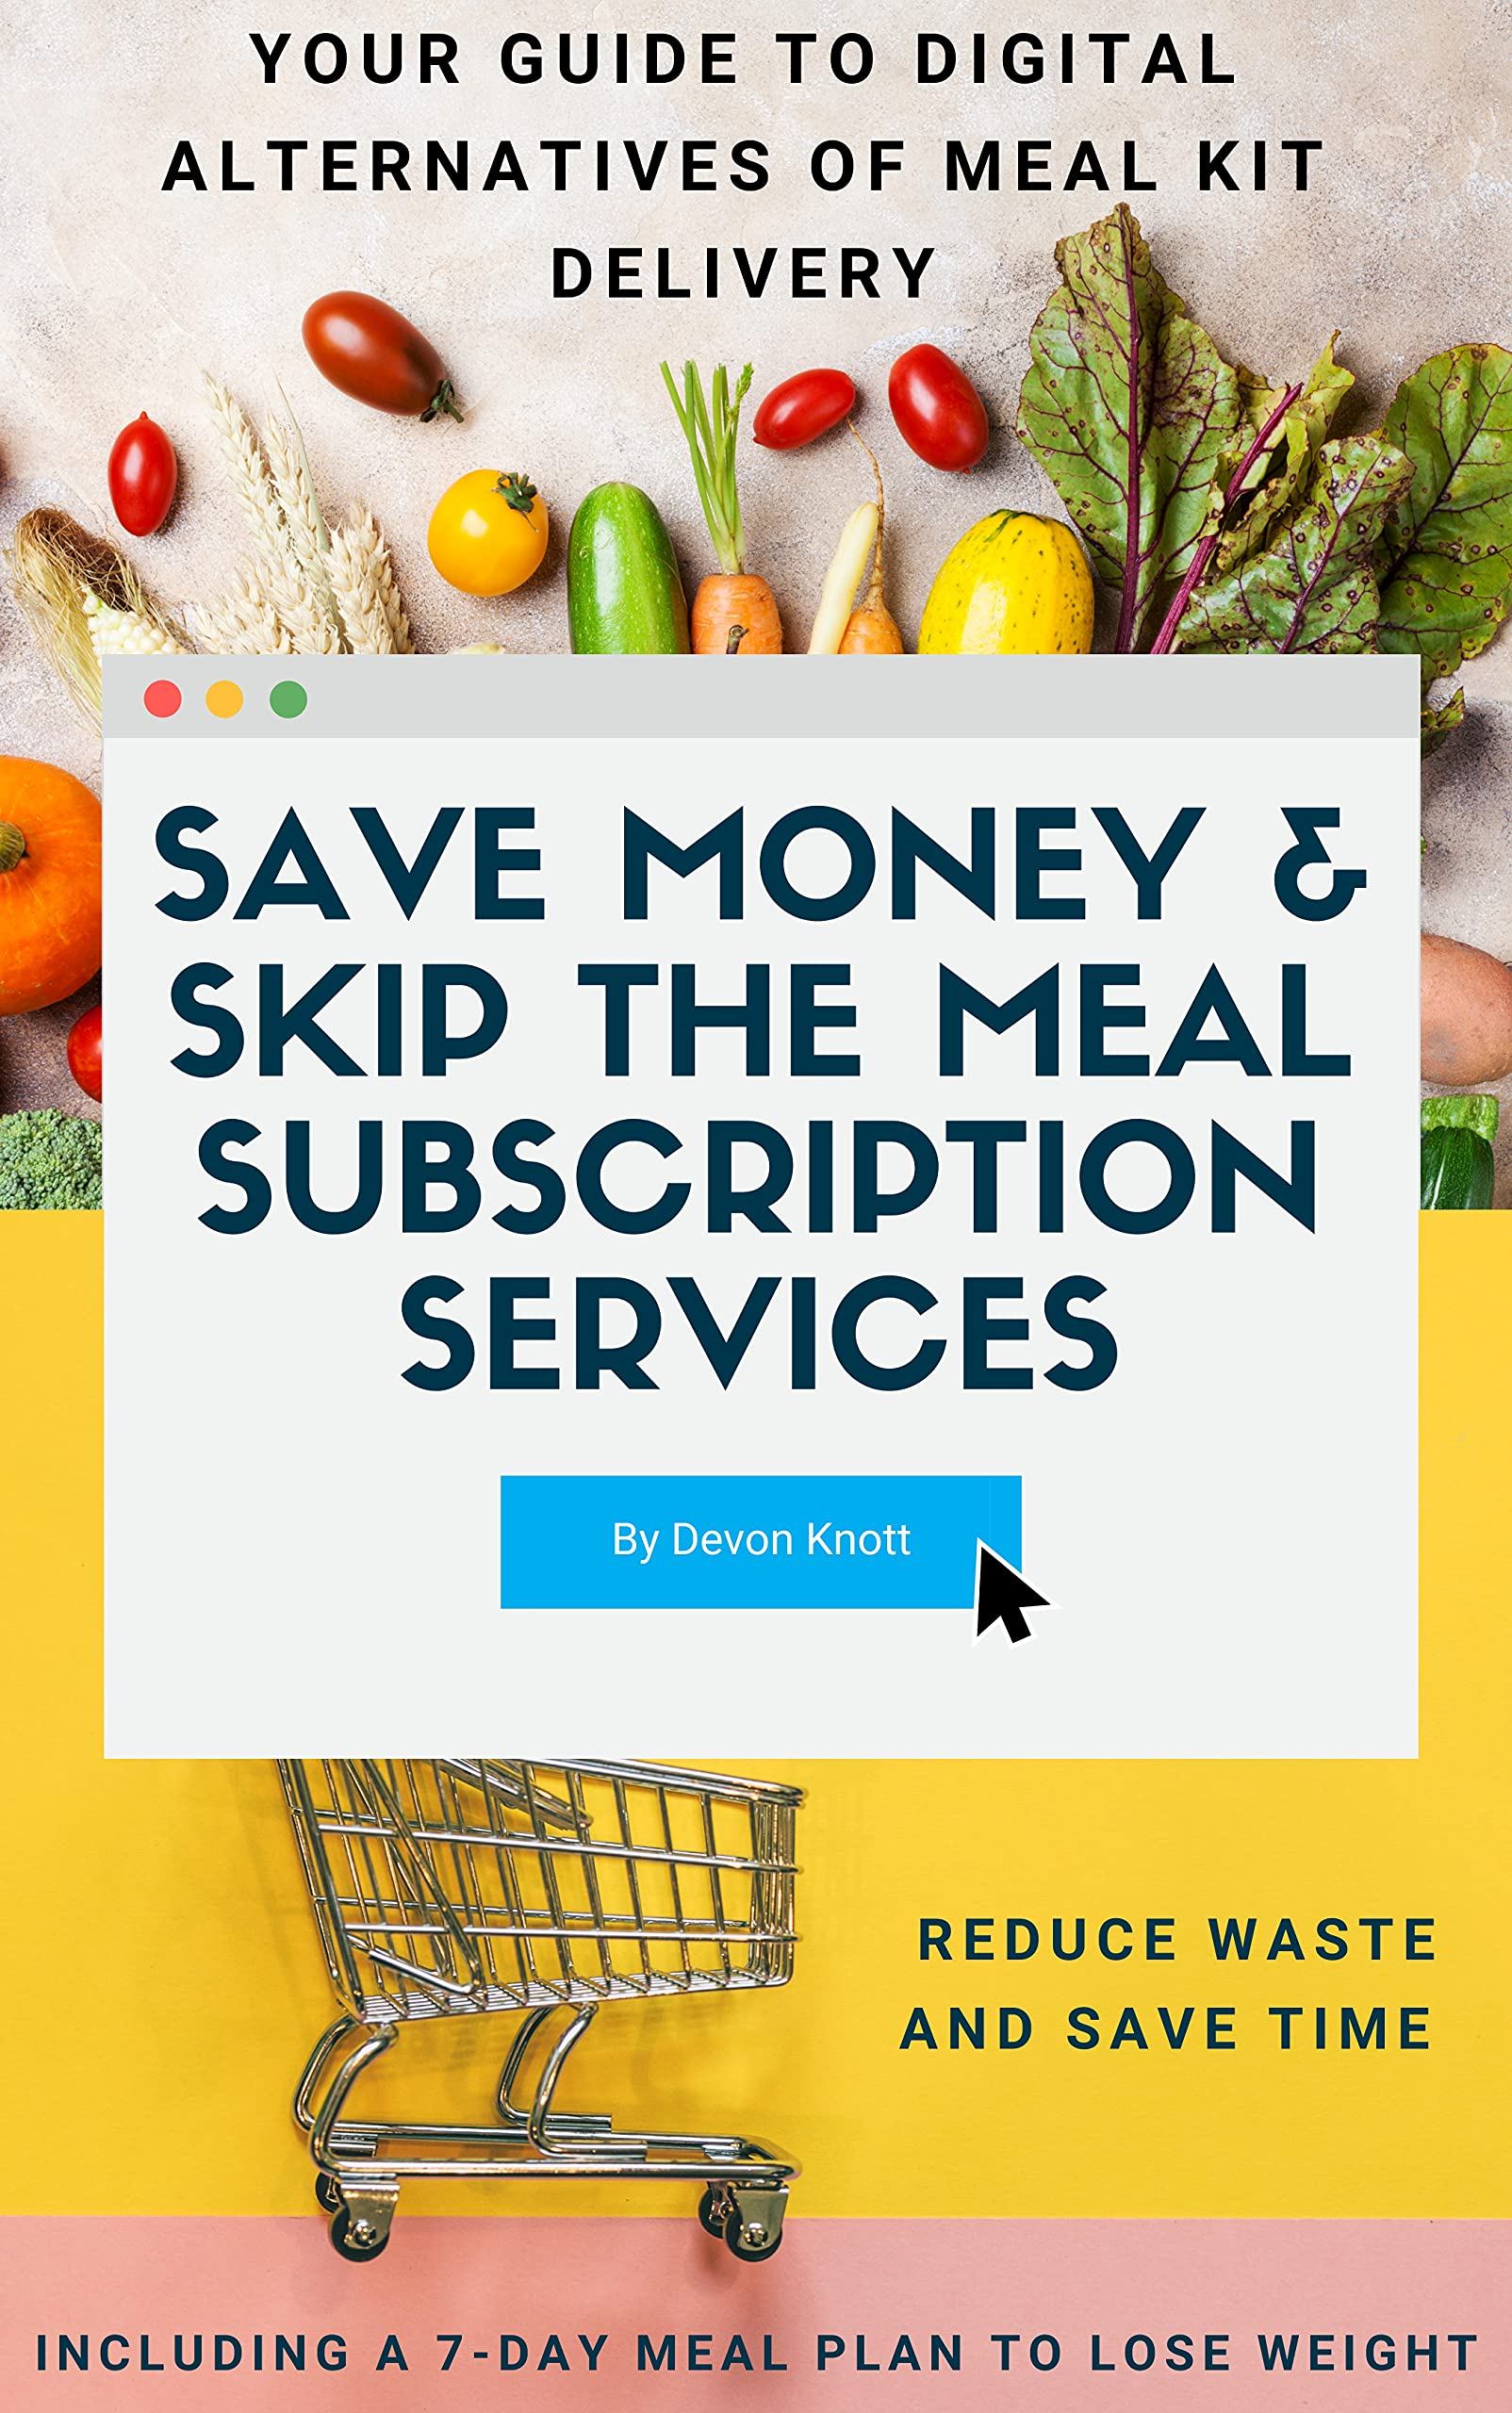 Save Money & Skip the Meal Subscription Services: Your Guide to Digital Alternatives of Meal Kit Delivery - Reduce Waste and Save Time, Also Including a 7-Day Meal Plan to Lose Weight